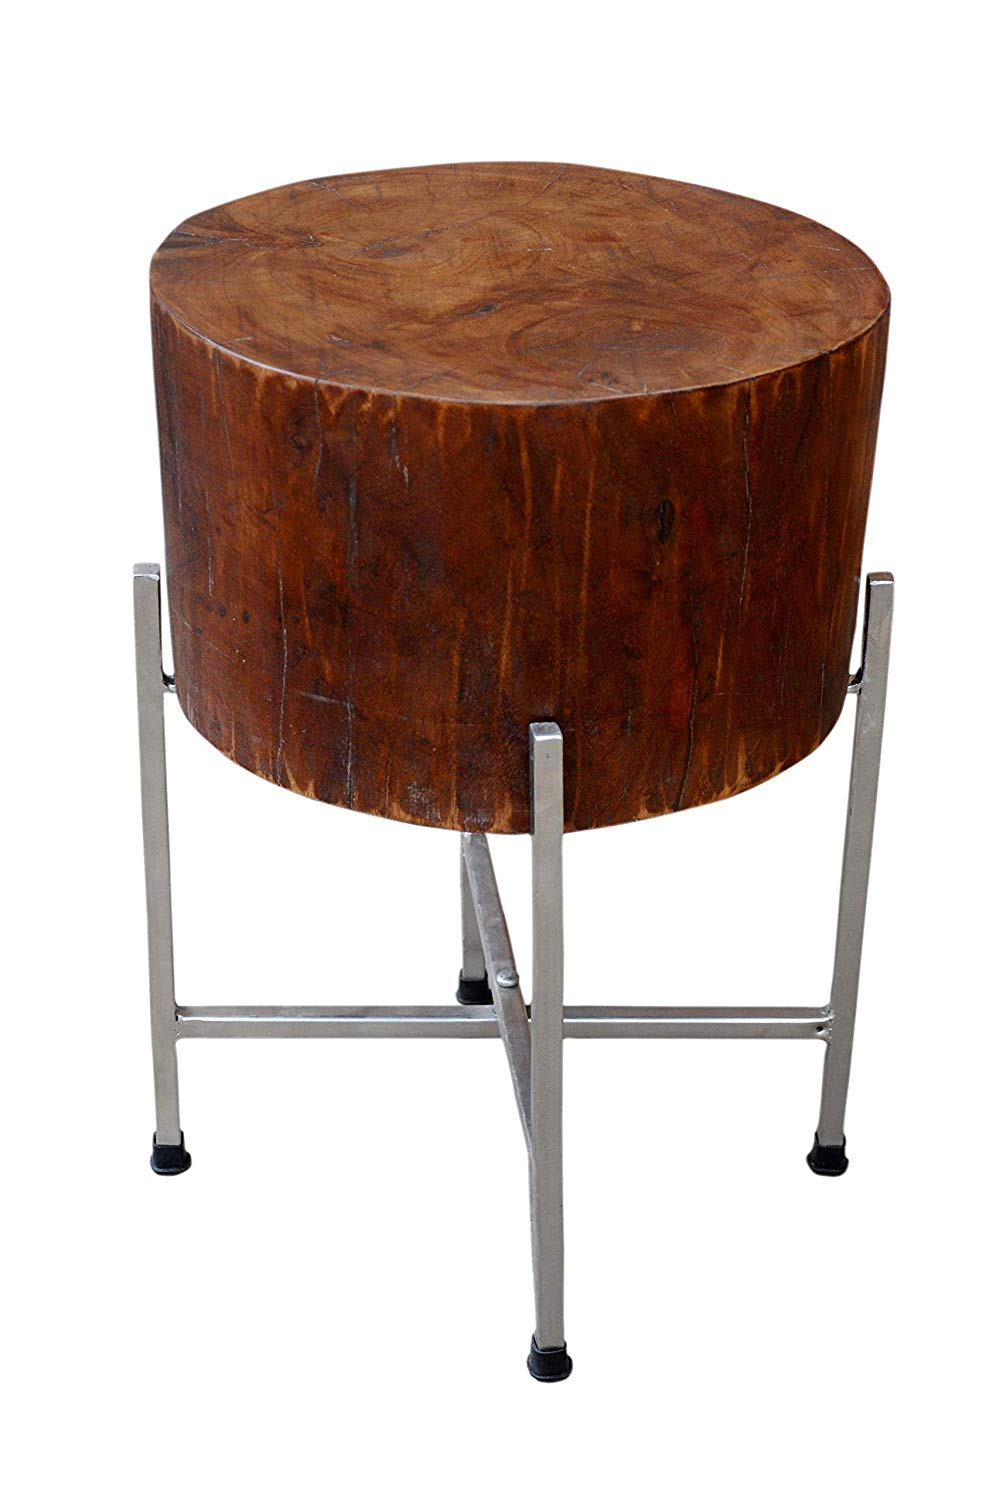 foreign affairs home decor solid mango wood accent table avani drum stan with cross leg silver stand polished inch block great bar style chocolate brown end tables small plastic